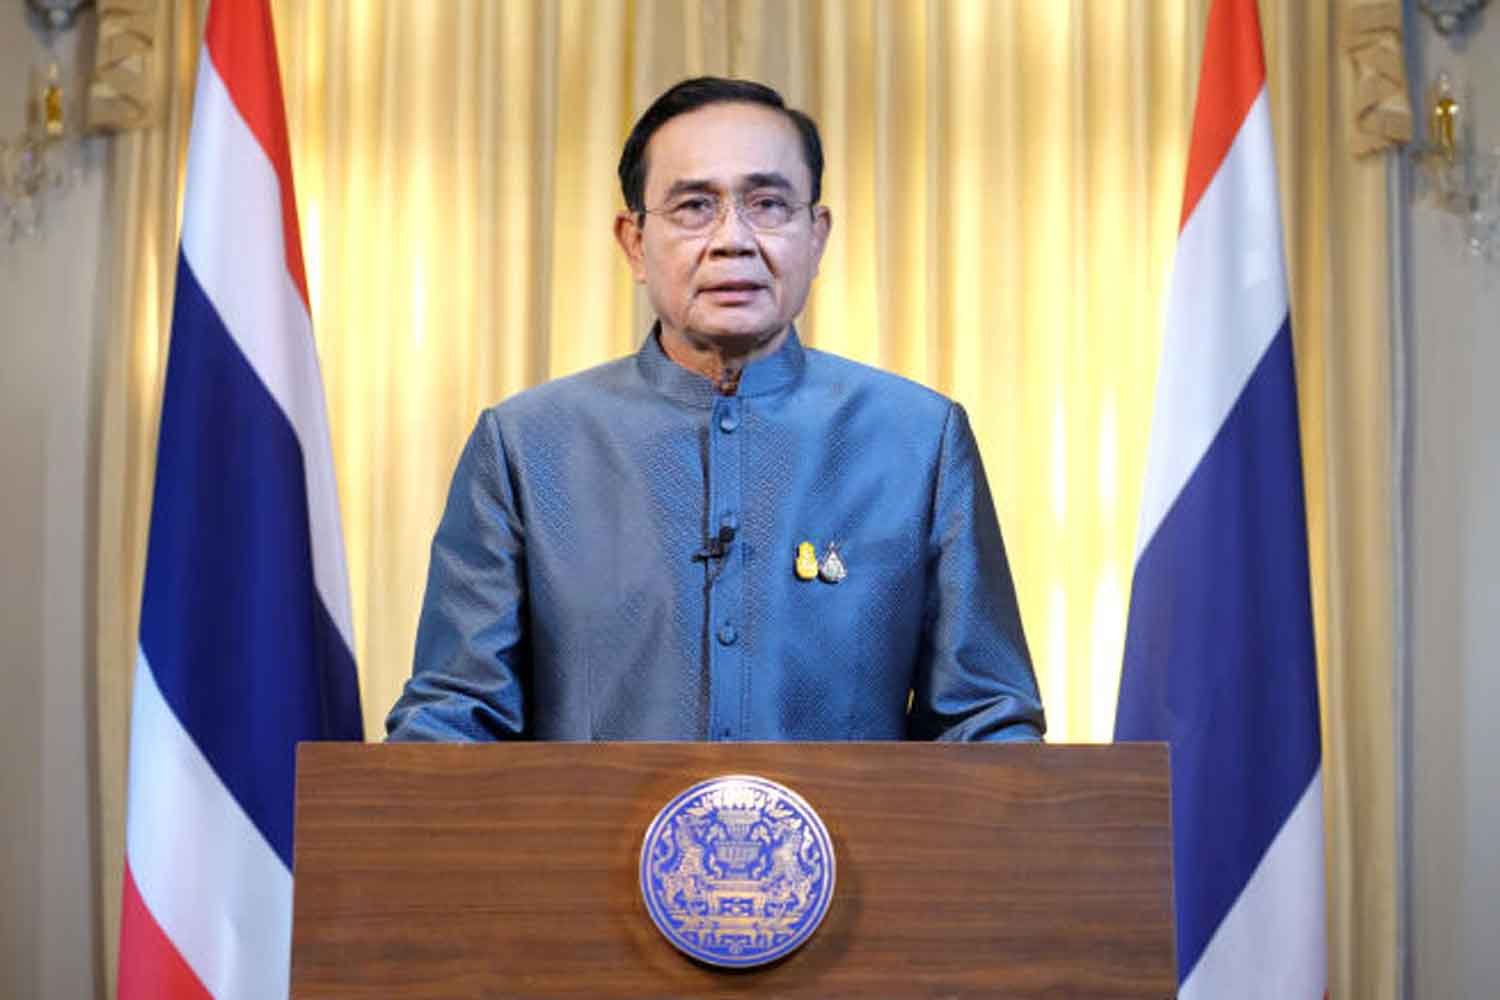 Prime Minister Prayut Chan-o-cha addresses the nation on the latest Covid-19 situations and impacts on Tuesday evening. (Government House photo)